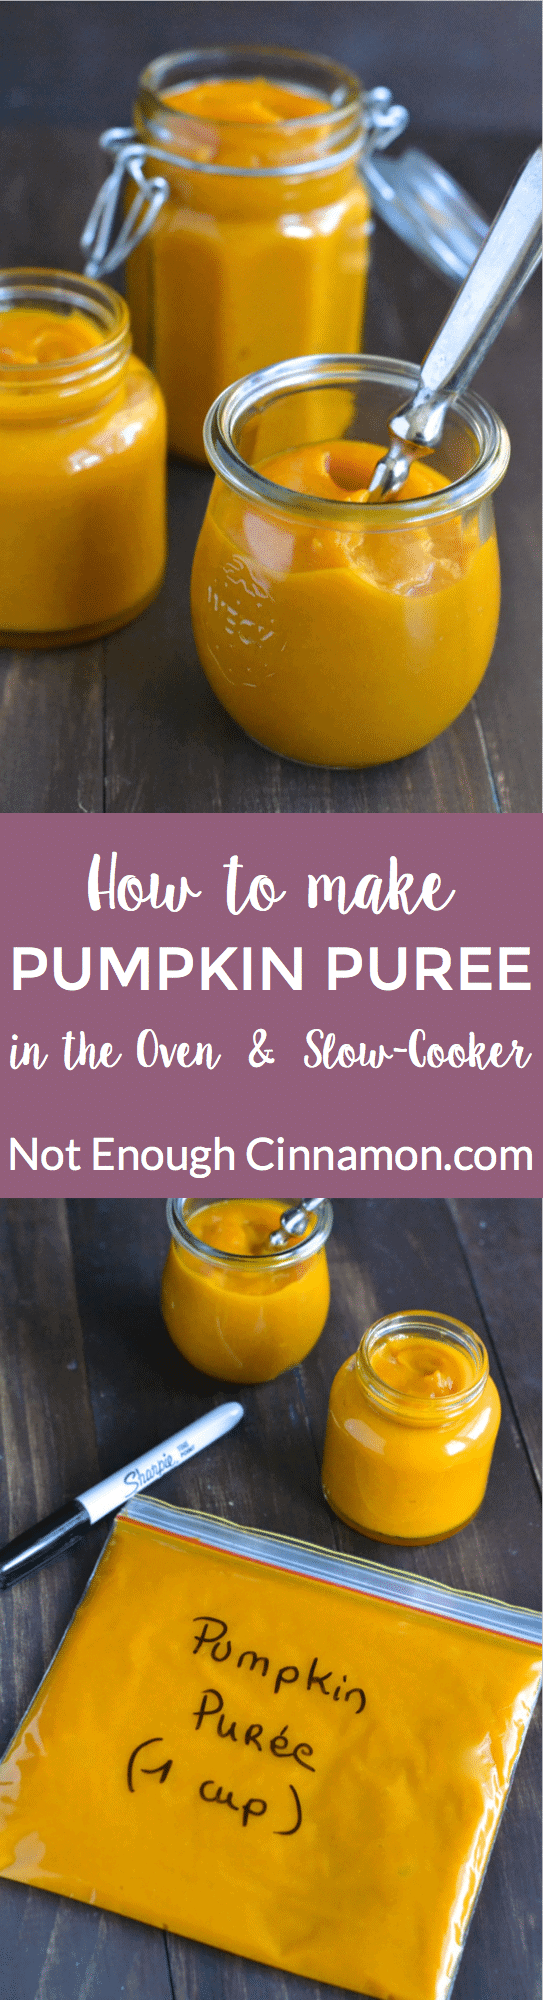 Learn how to make pumpkin puree in the oven or in the slow cooker with this easy recipe. Homemade, this fall baking staple is much tastier and cheaper than the storebought canned version! All you need is a pumpkin!#pumpkinpuree, #fallbaking, #homemade, #healthyrecipes, #bakinghacks